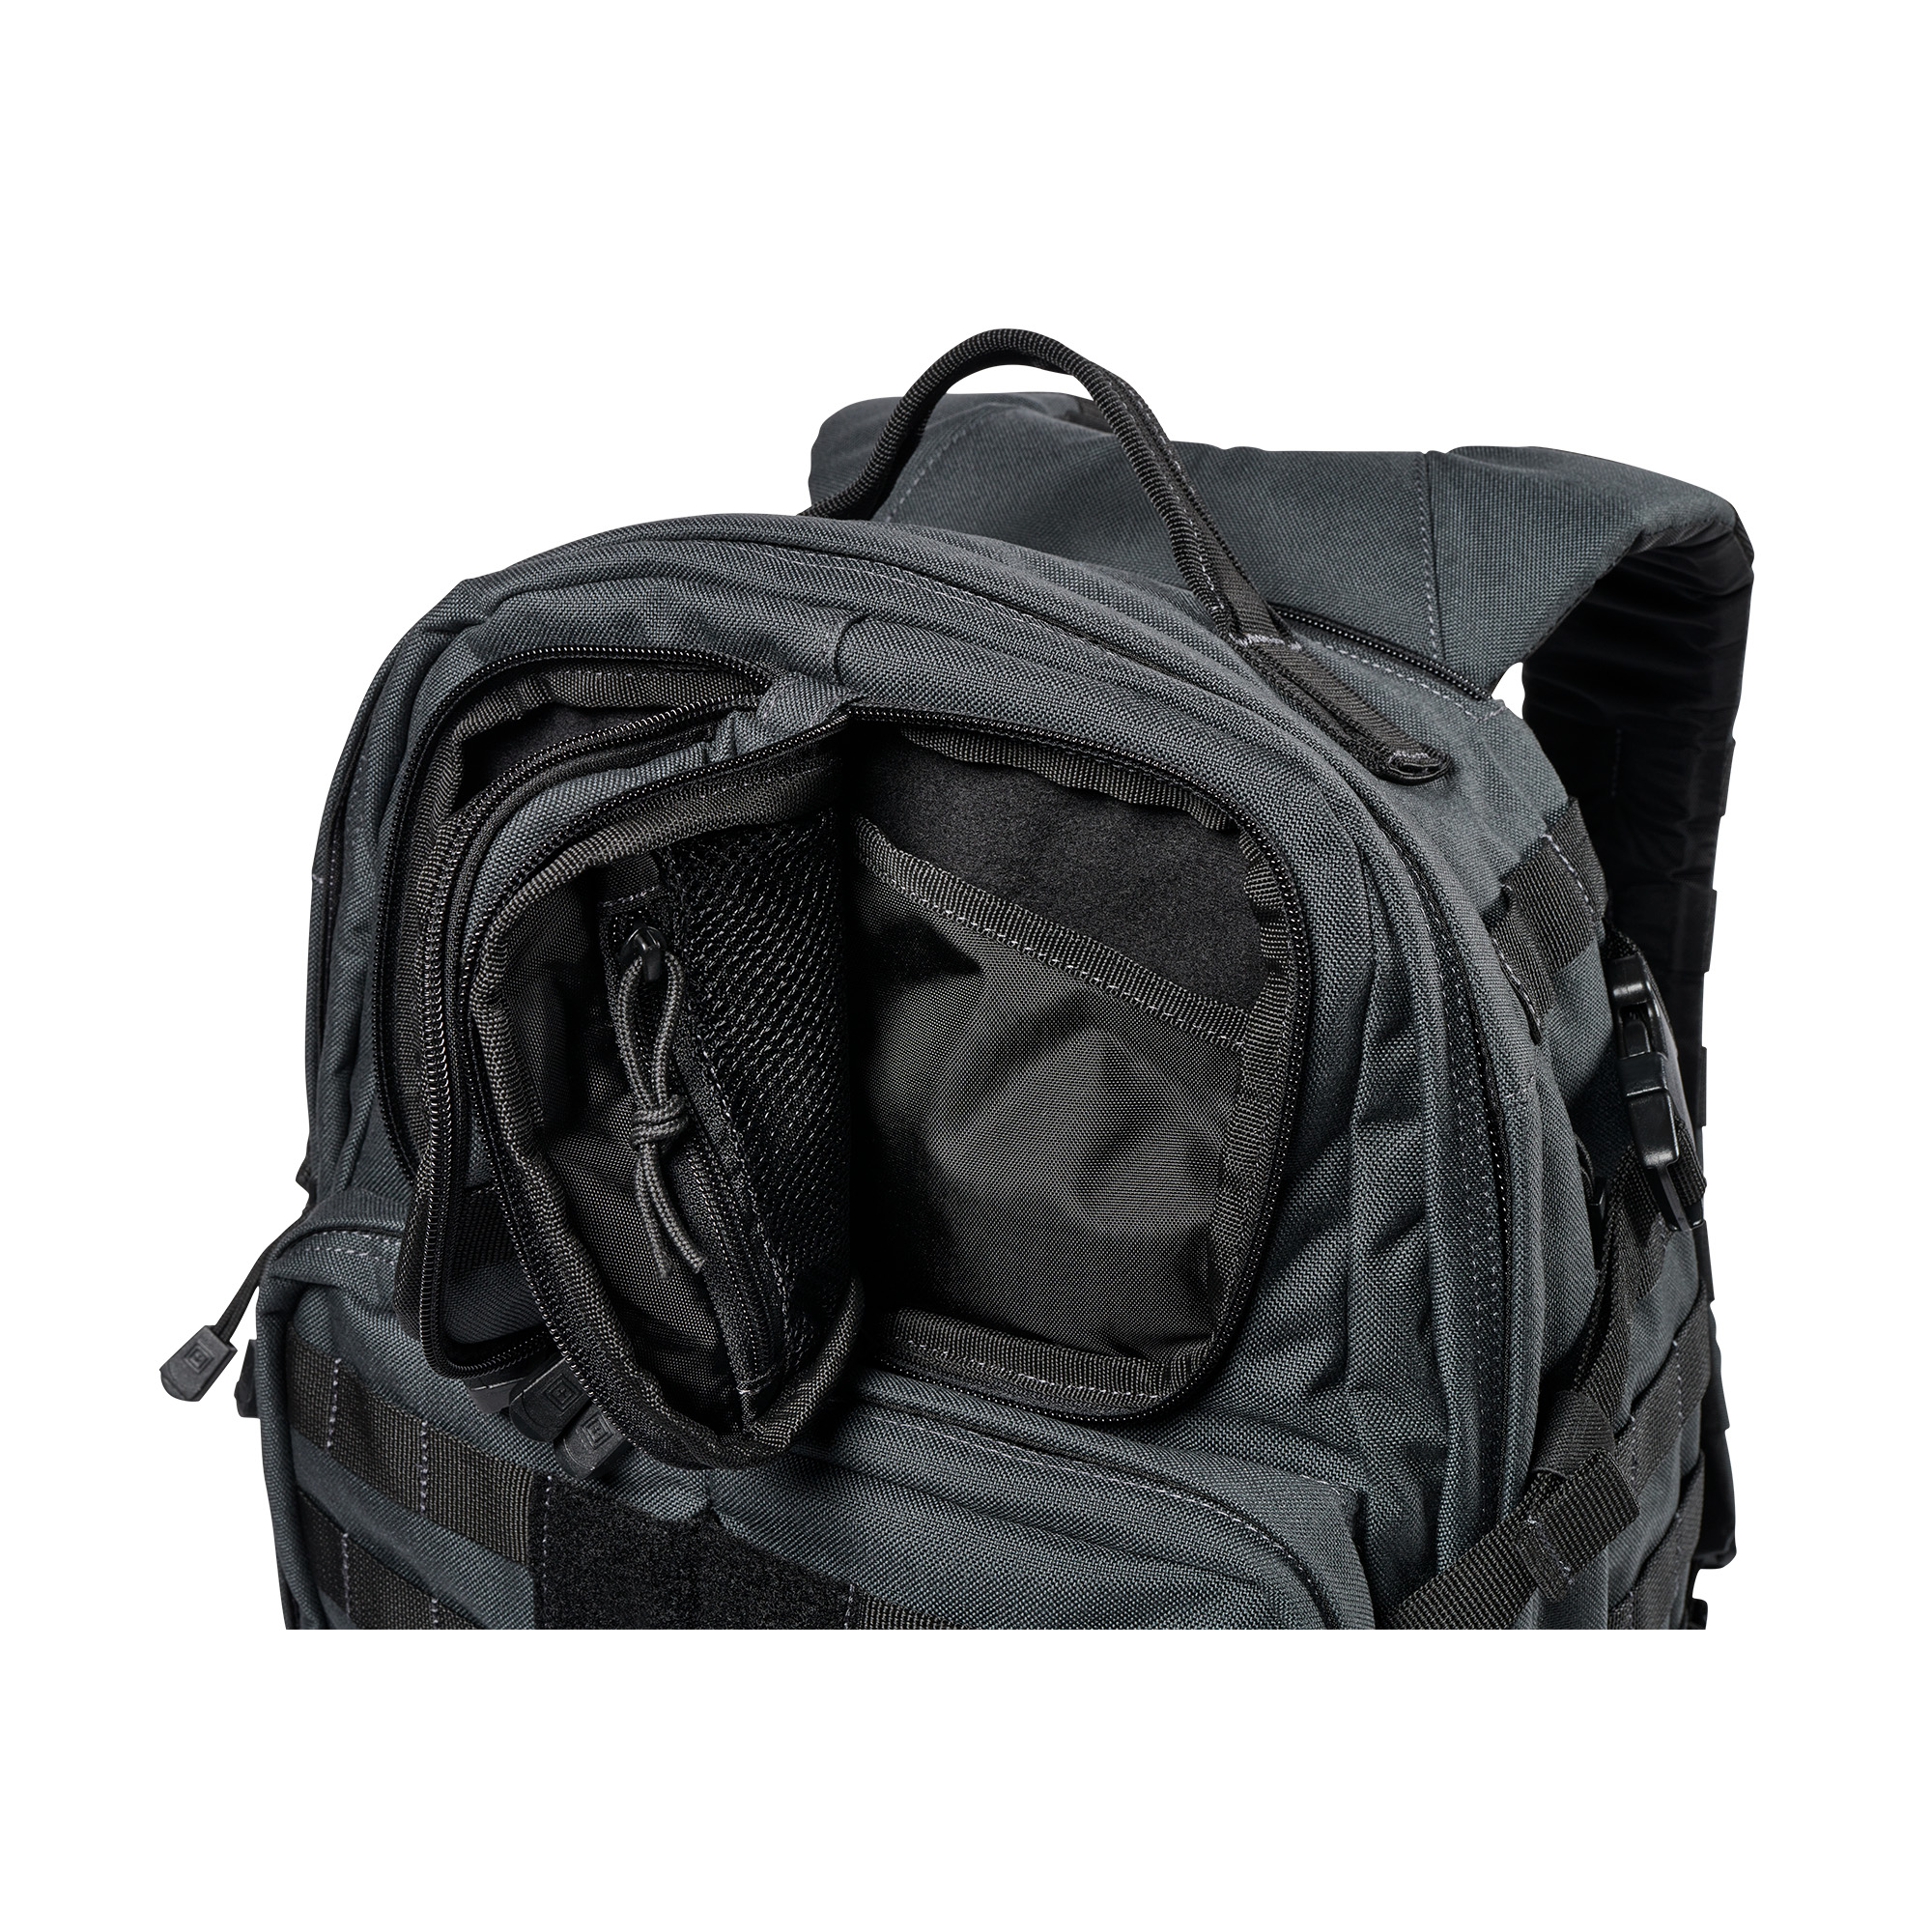 Balo 5.11 Tactical Rush 24 2.0 – Double Tap